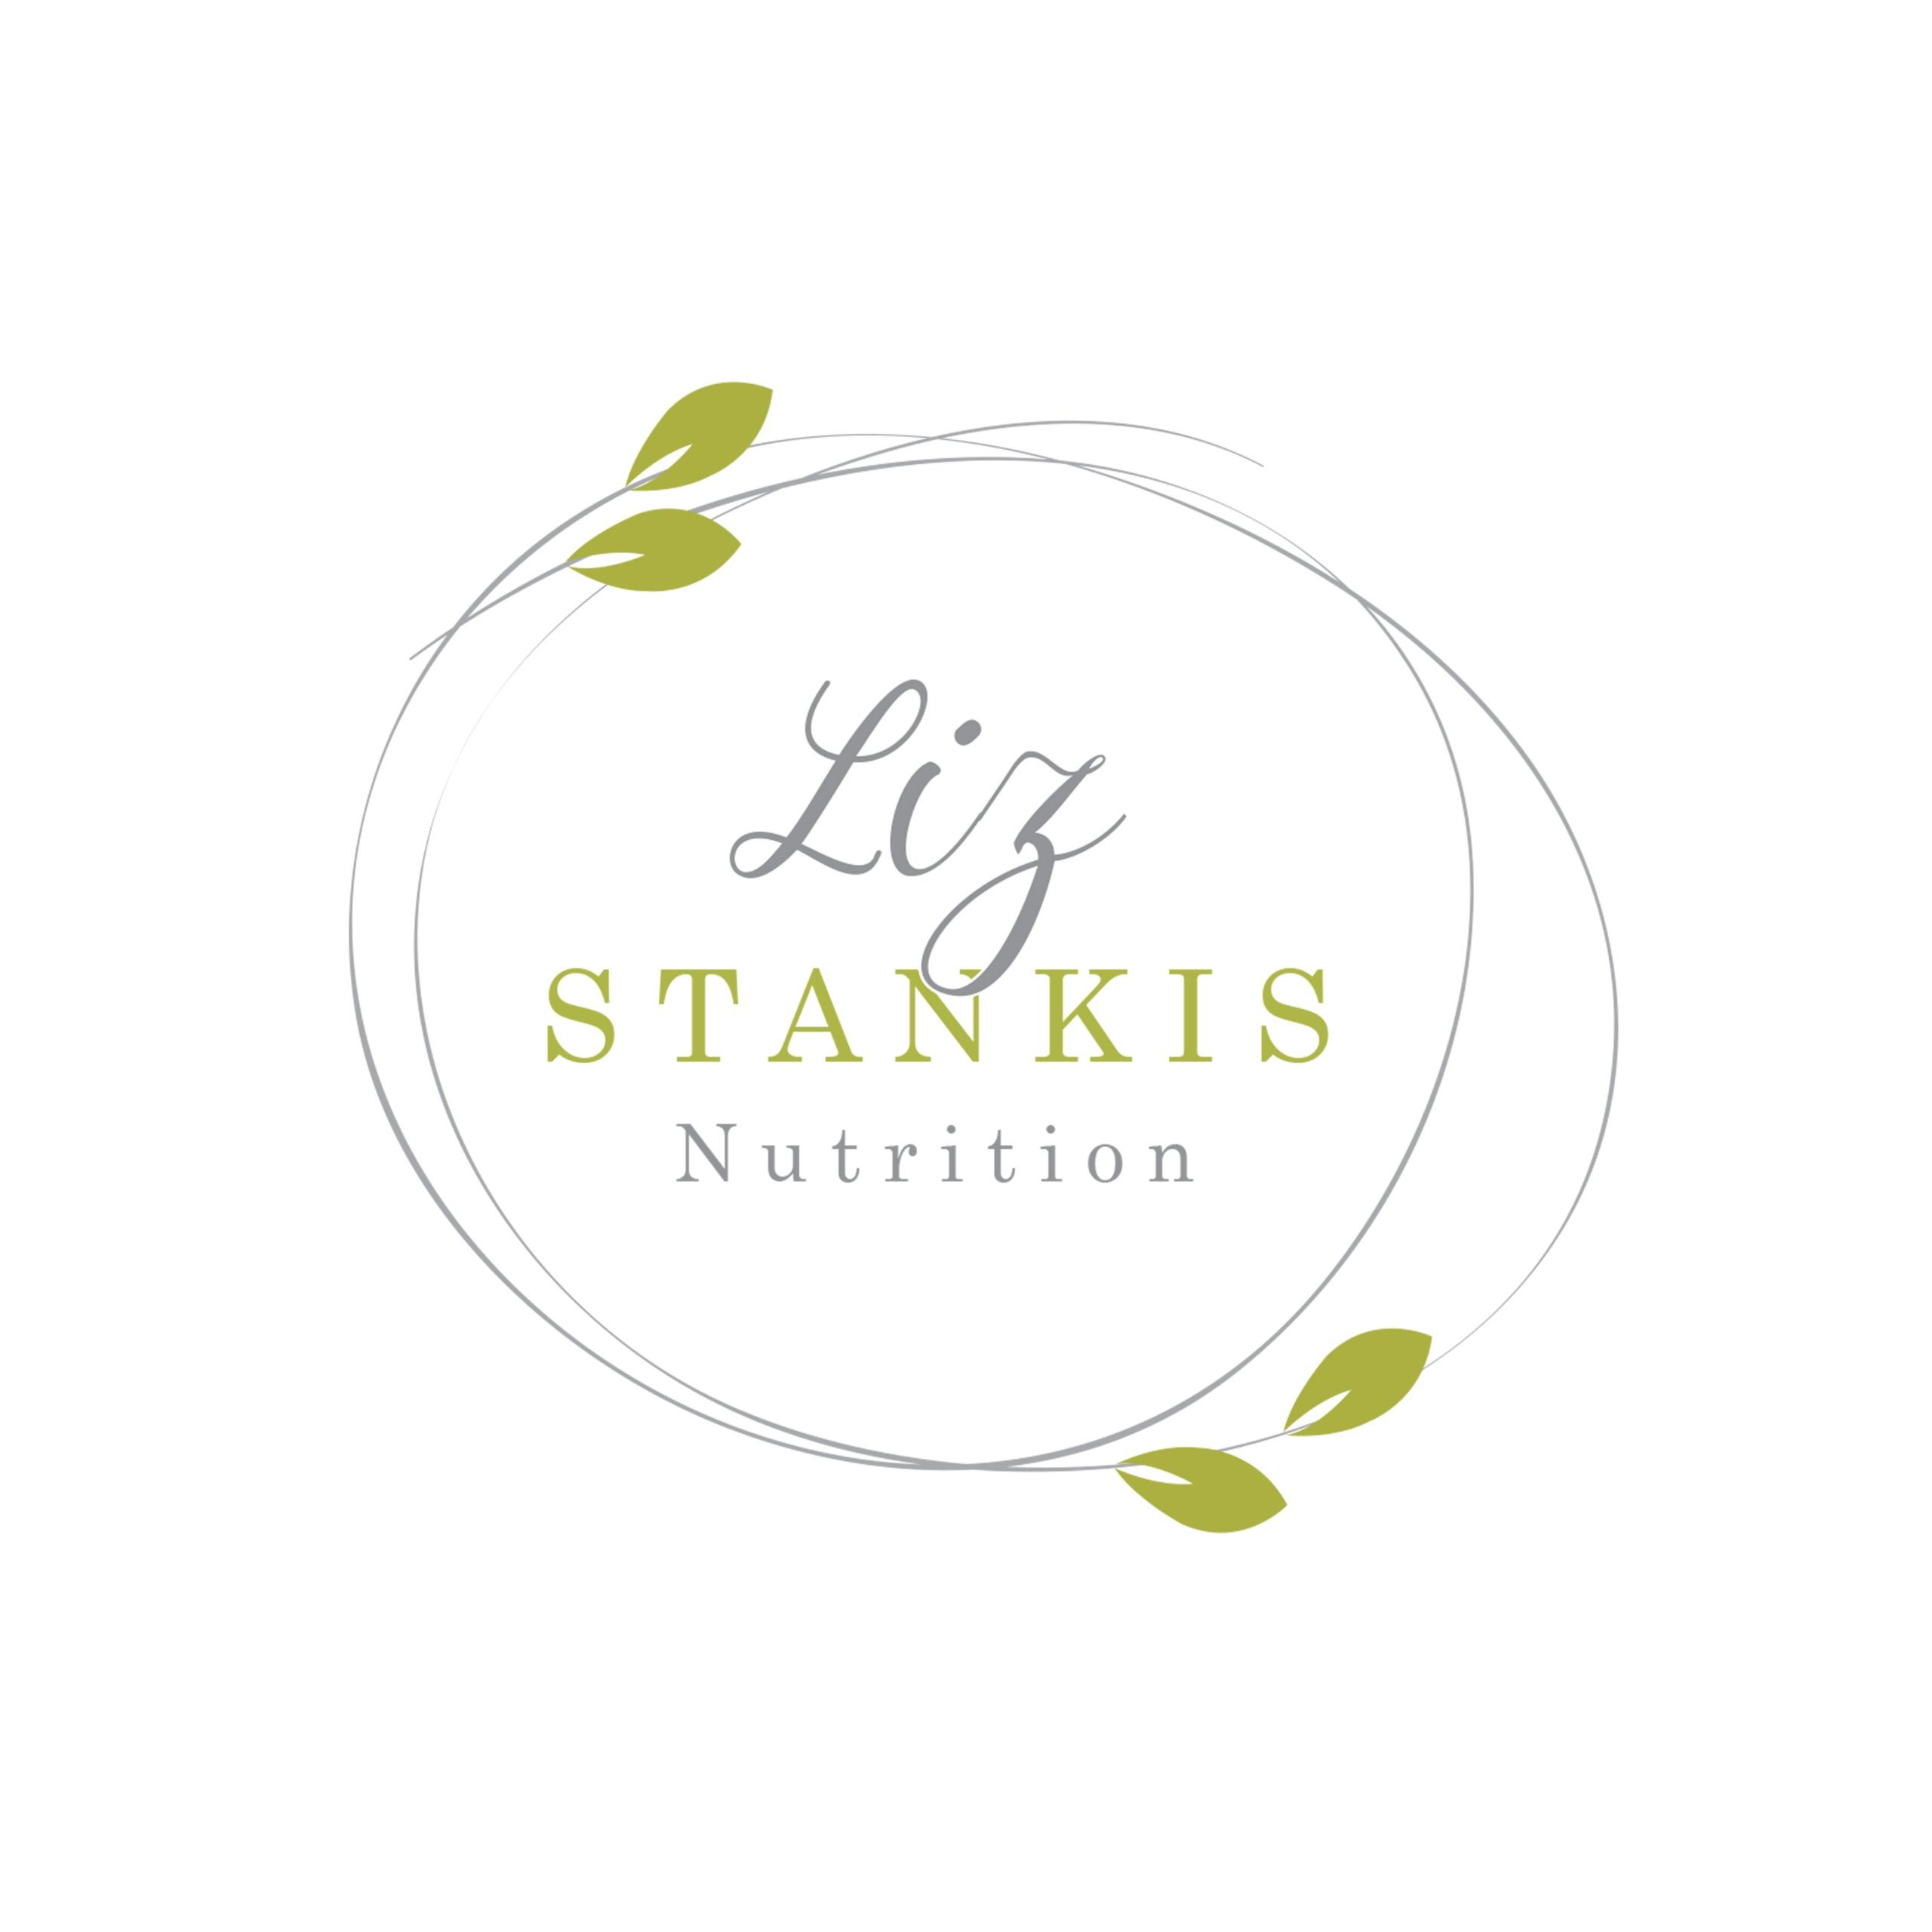 Picture of Liz Stankis Nutrition logo